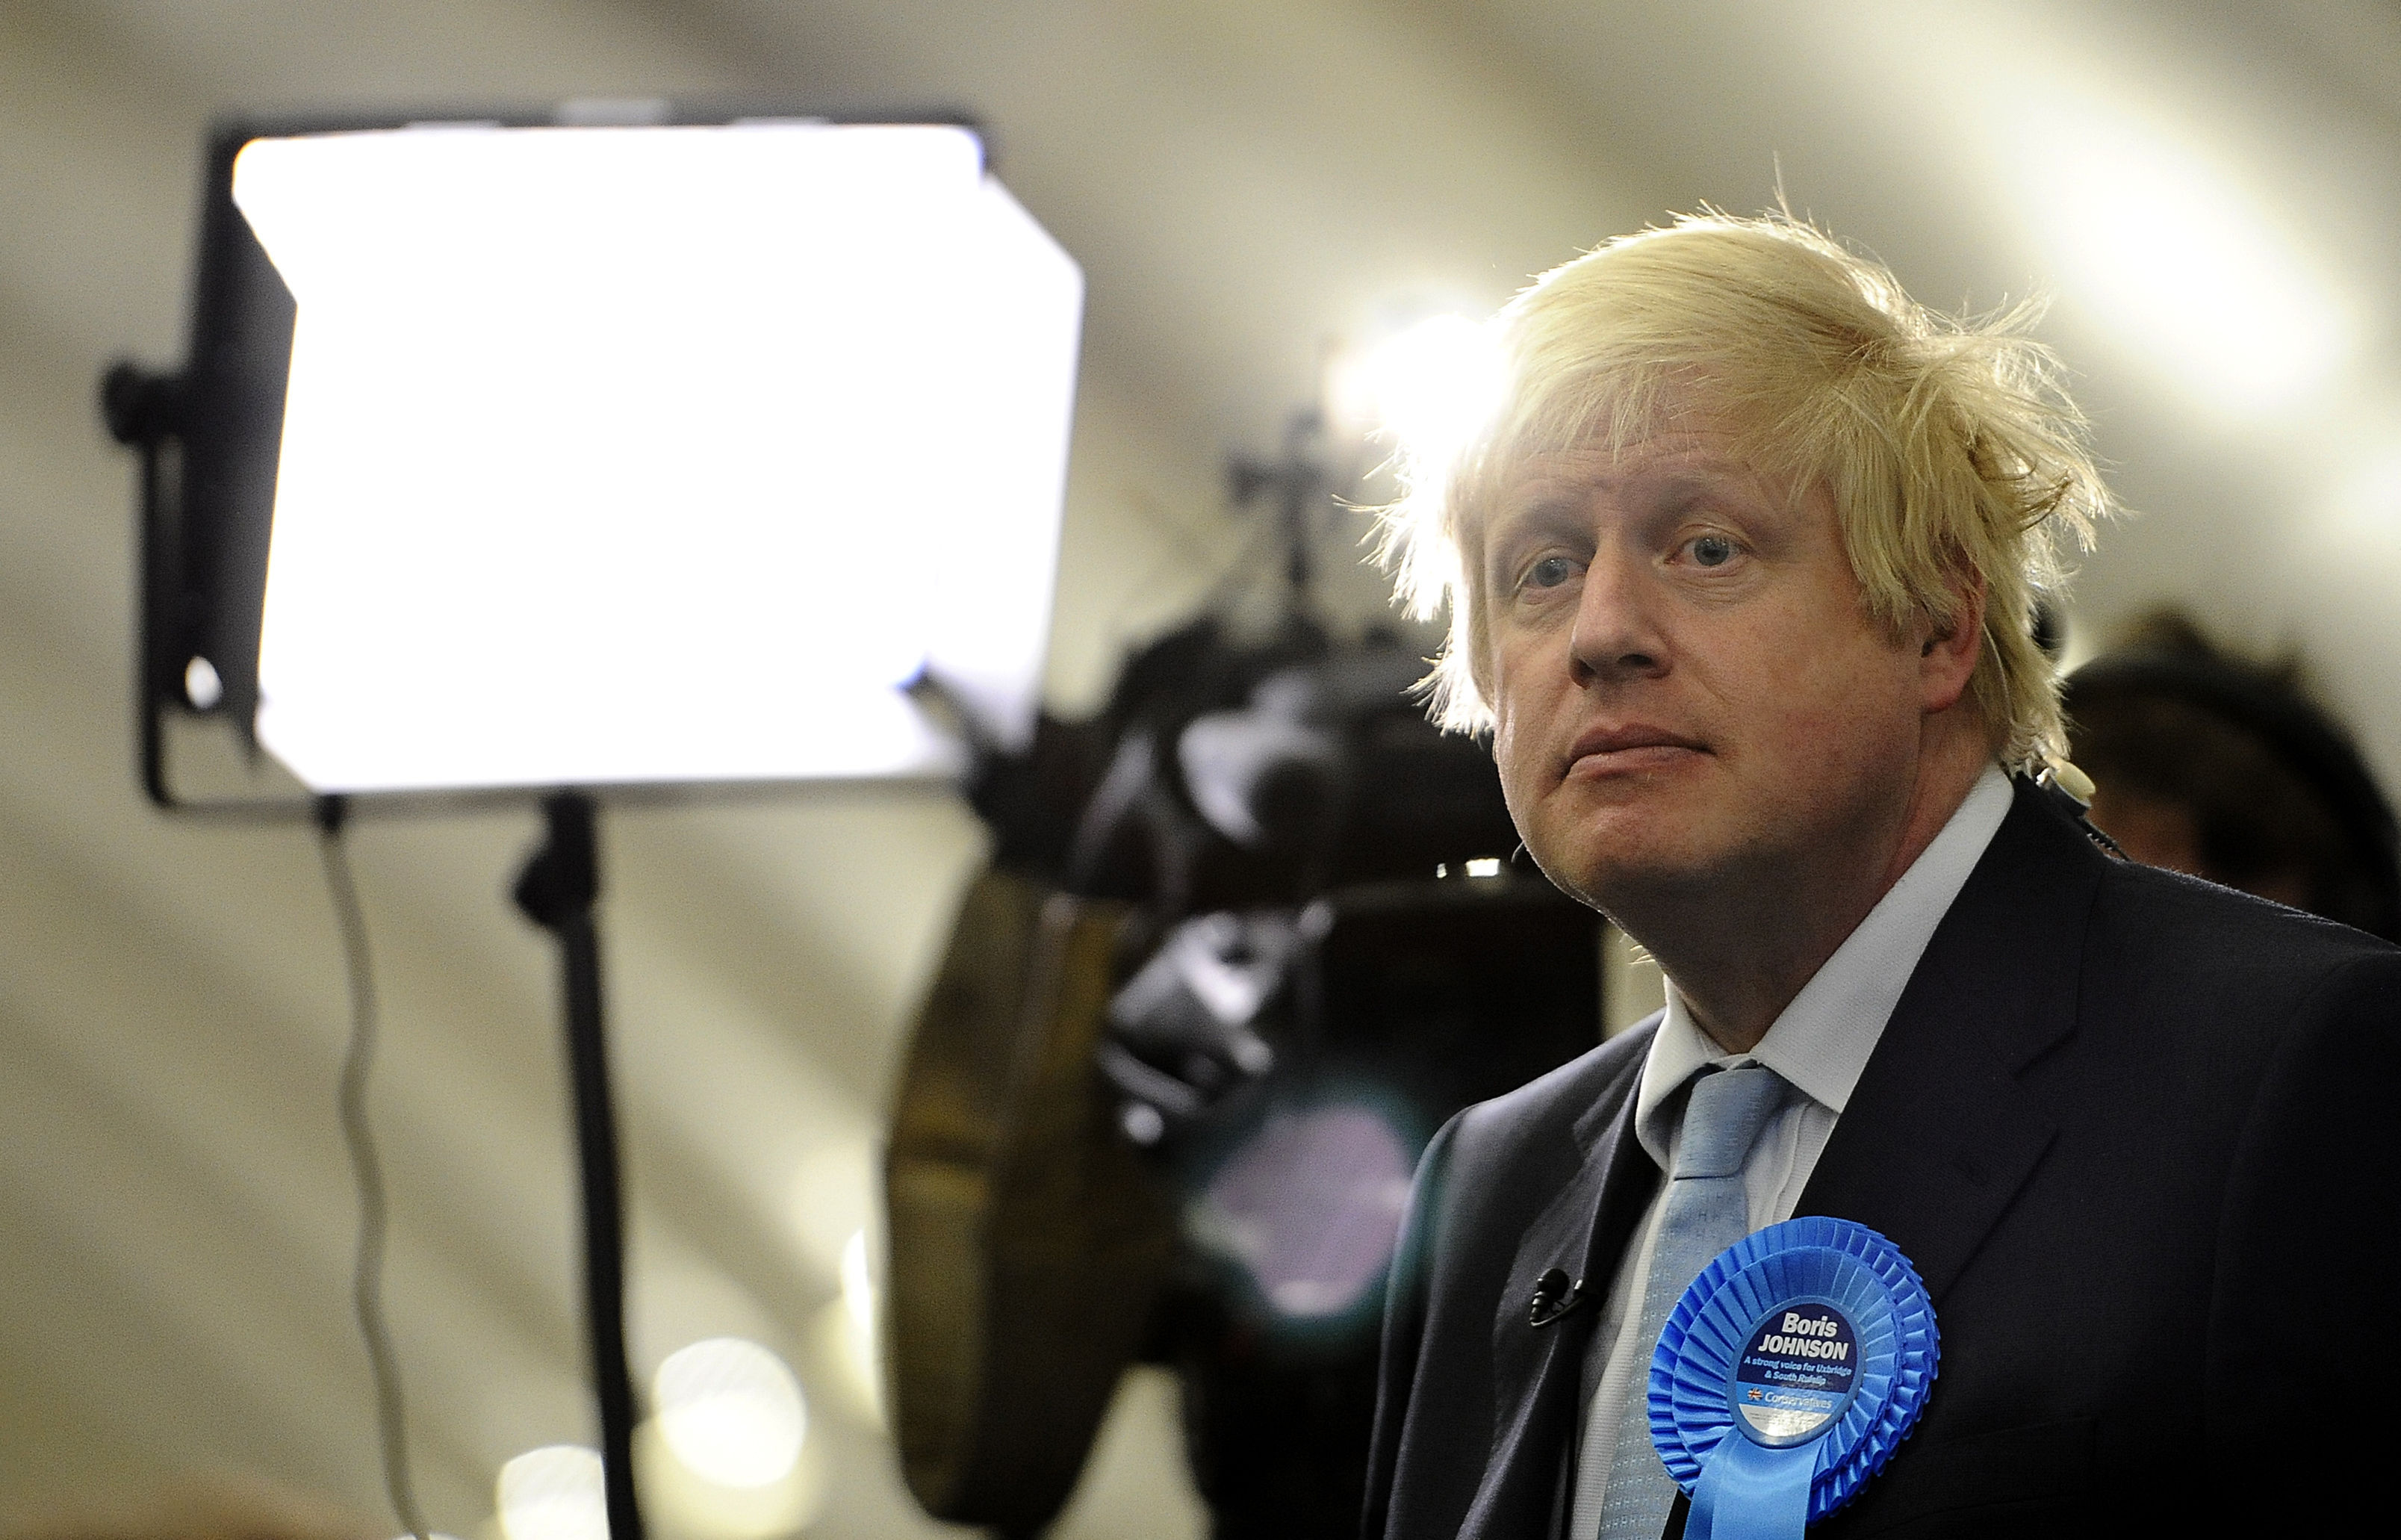 Mayor of London and prospective Conservative candidate for Uxbridge and South Ruislip Boris Johnson after the General Election count at Brunel University, London.